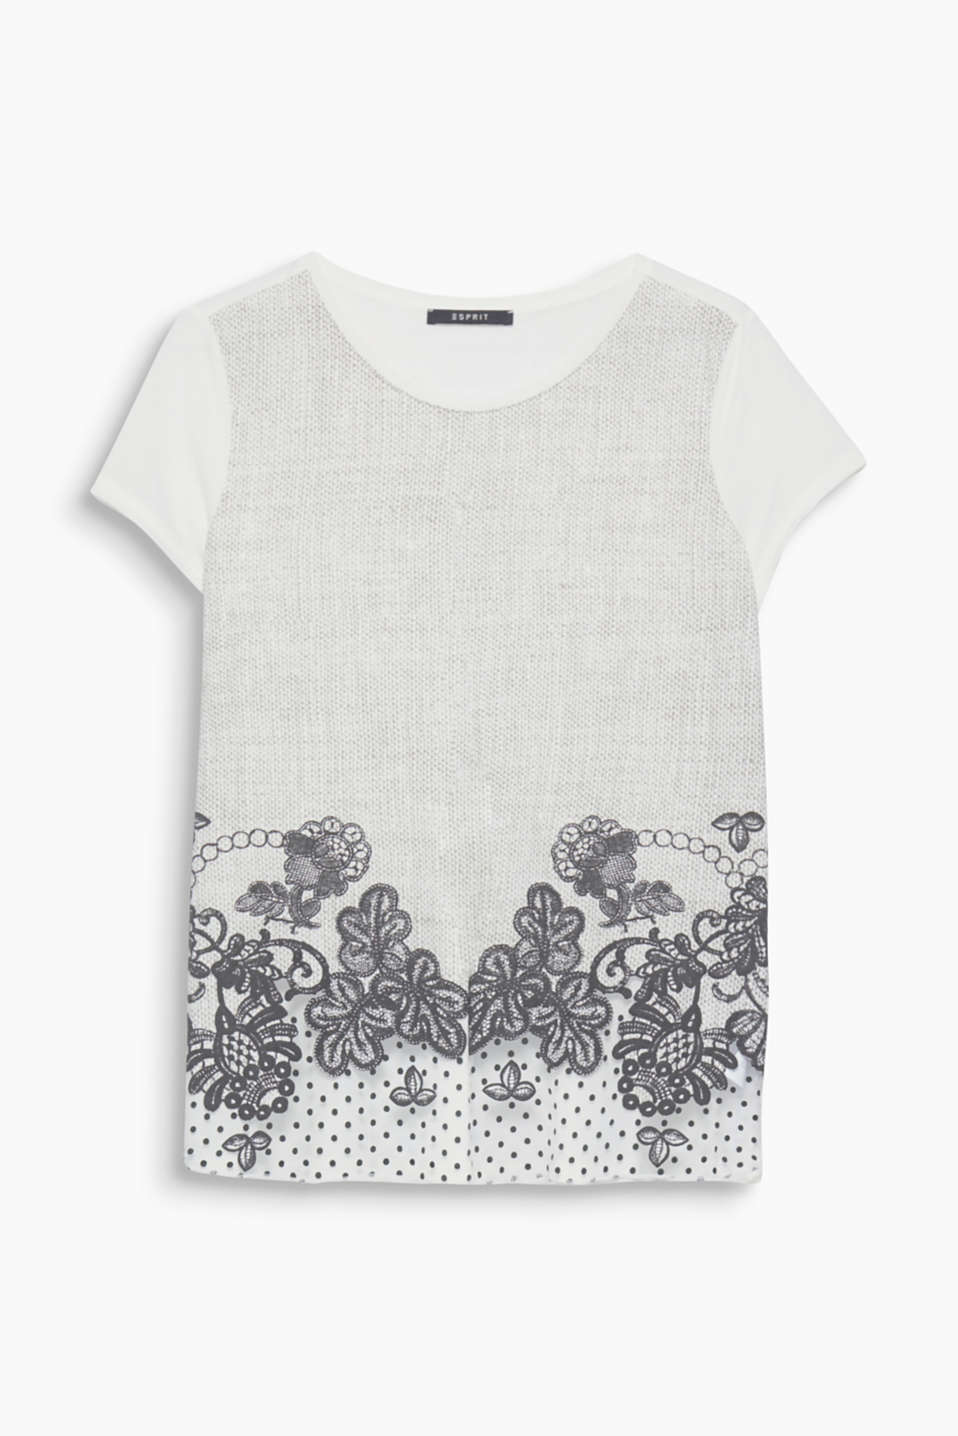 This top adds embellishment to any look with its textured pattern, rubberised flowers and chiffon hem!